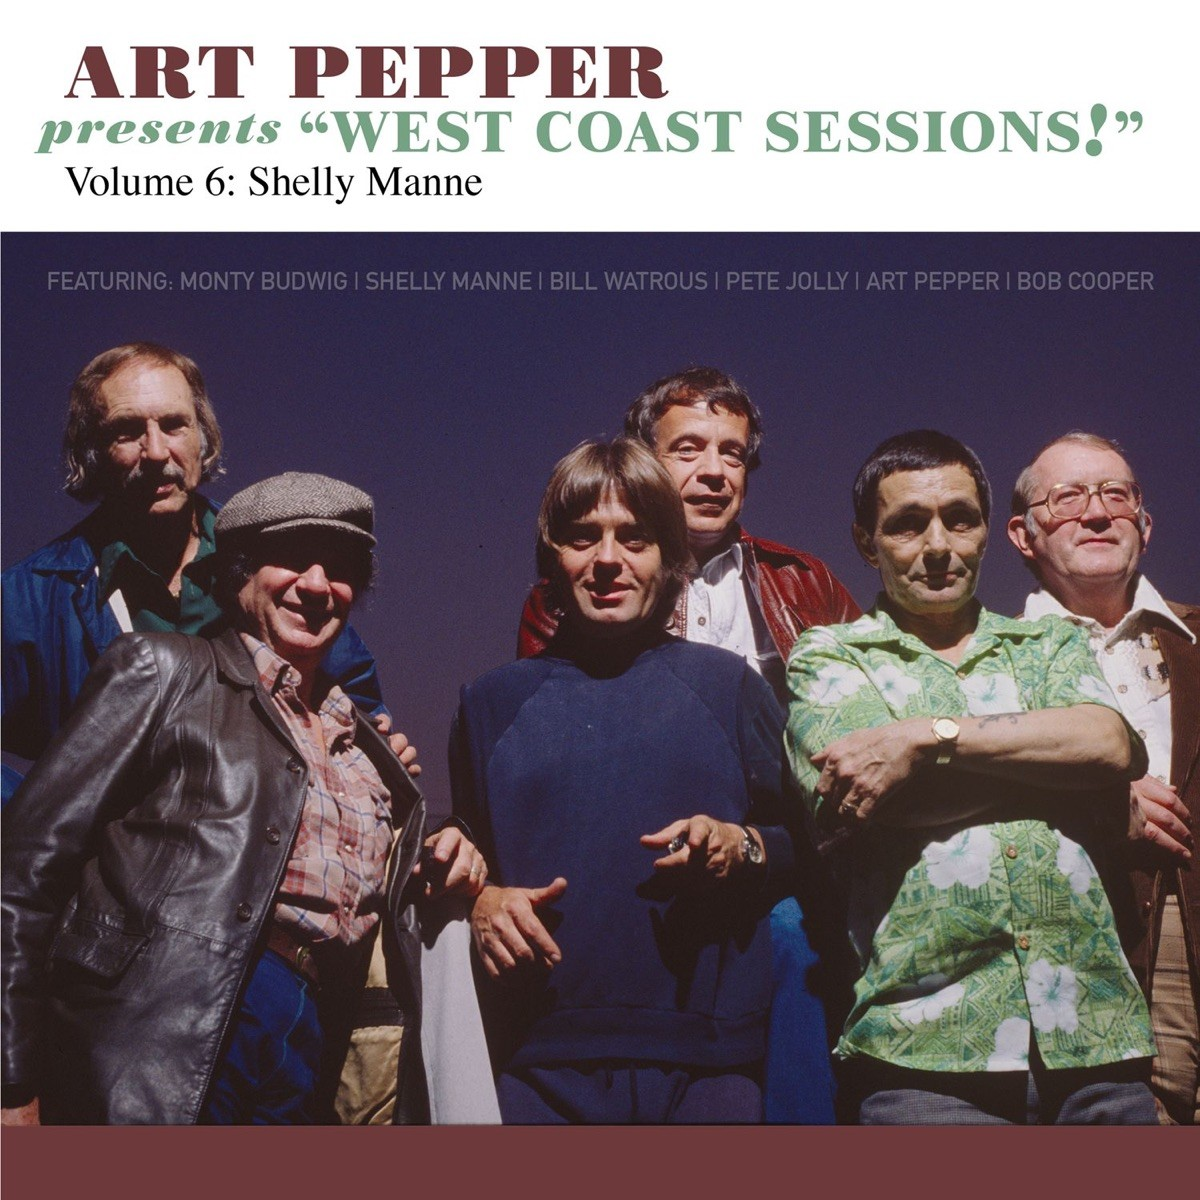 """Art Pepper Feat. Shelly Manne - Presents """"West Coast Sessions!"""" Volume 6 CD - OVCD237"""